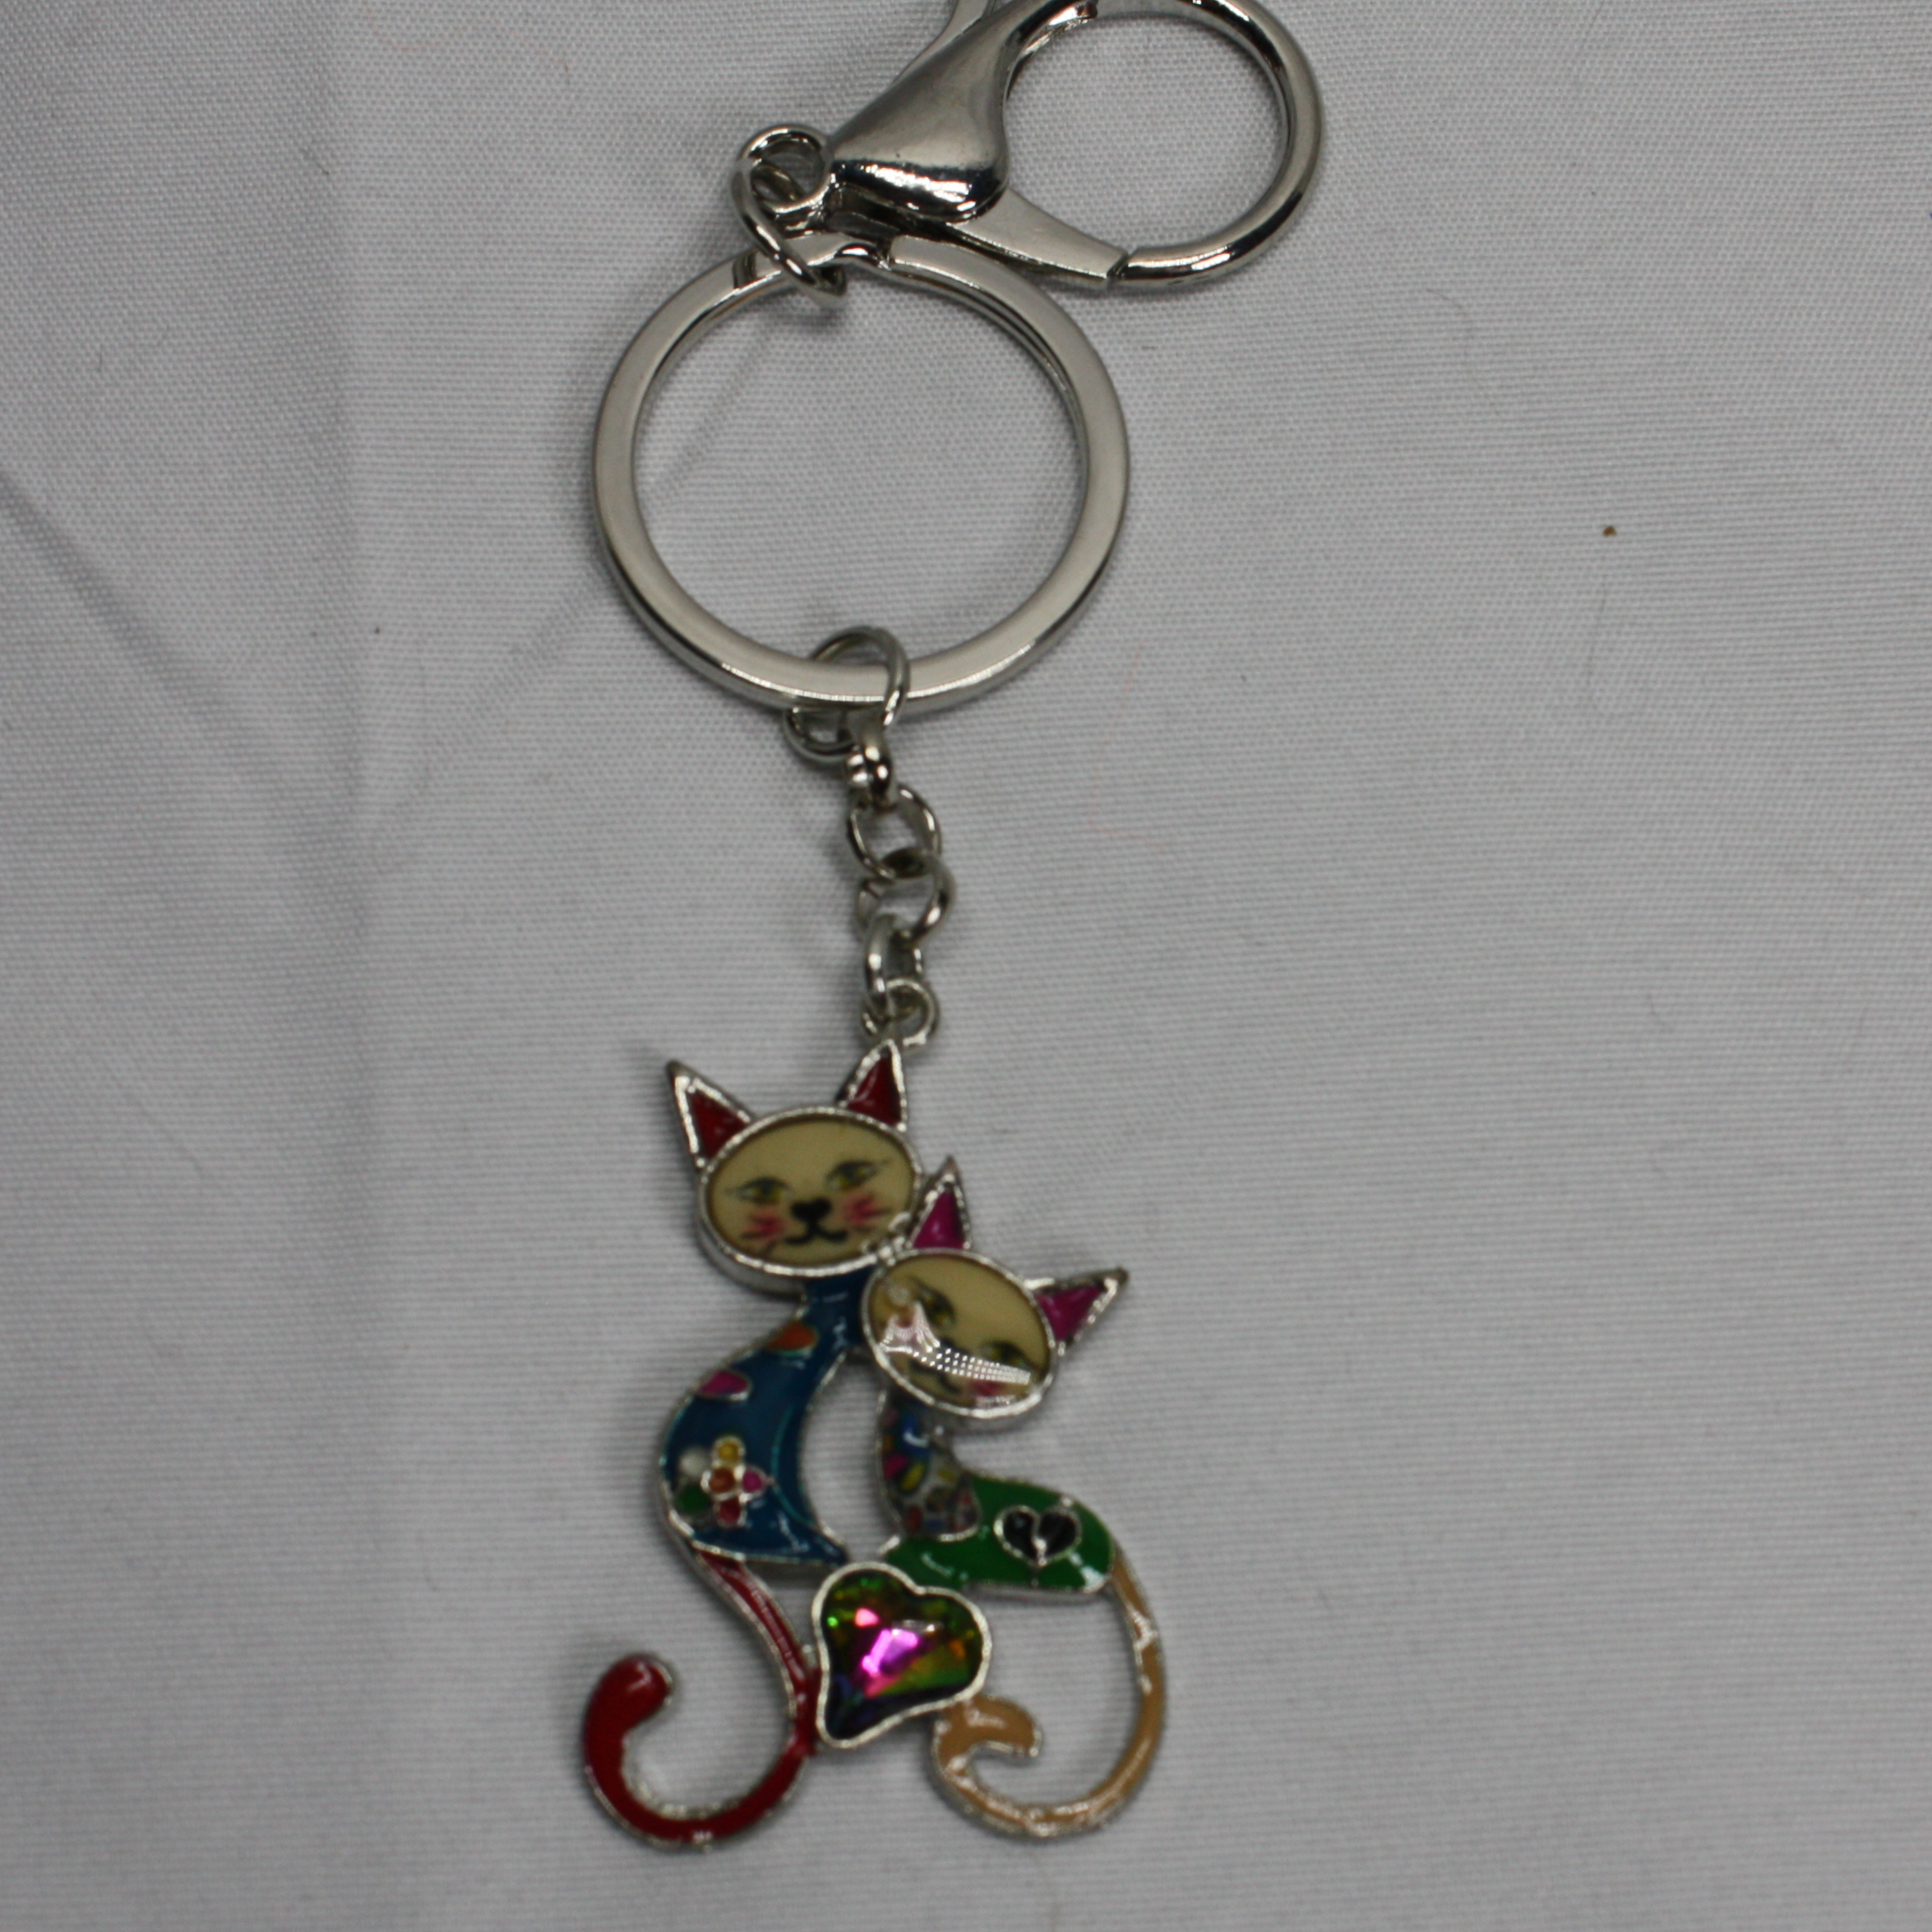 Two cat key chain